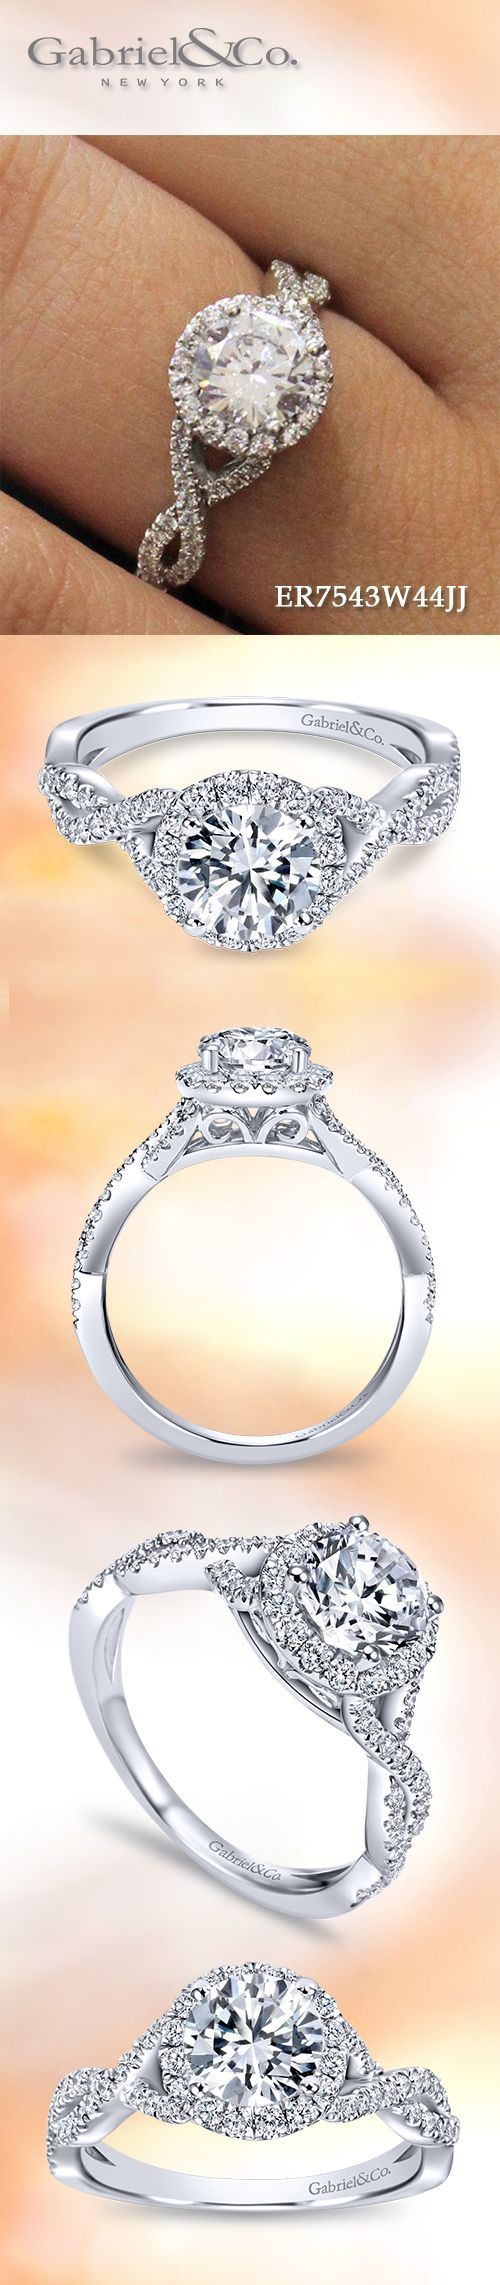 Gabriel & Co. - Voted #1 Most Preferred Bridal Brand.   With a criss cross style diamond band and diamond halo, this engagement ring will enhance your round cut center stone.